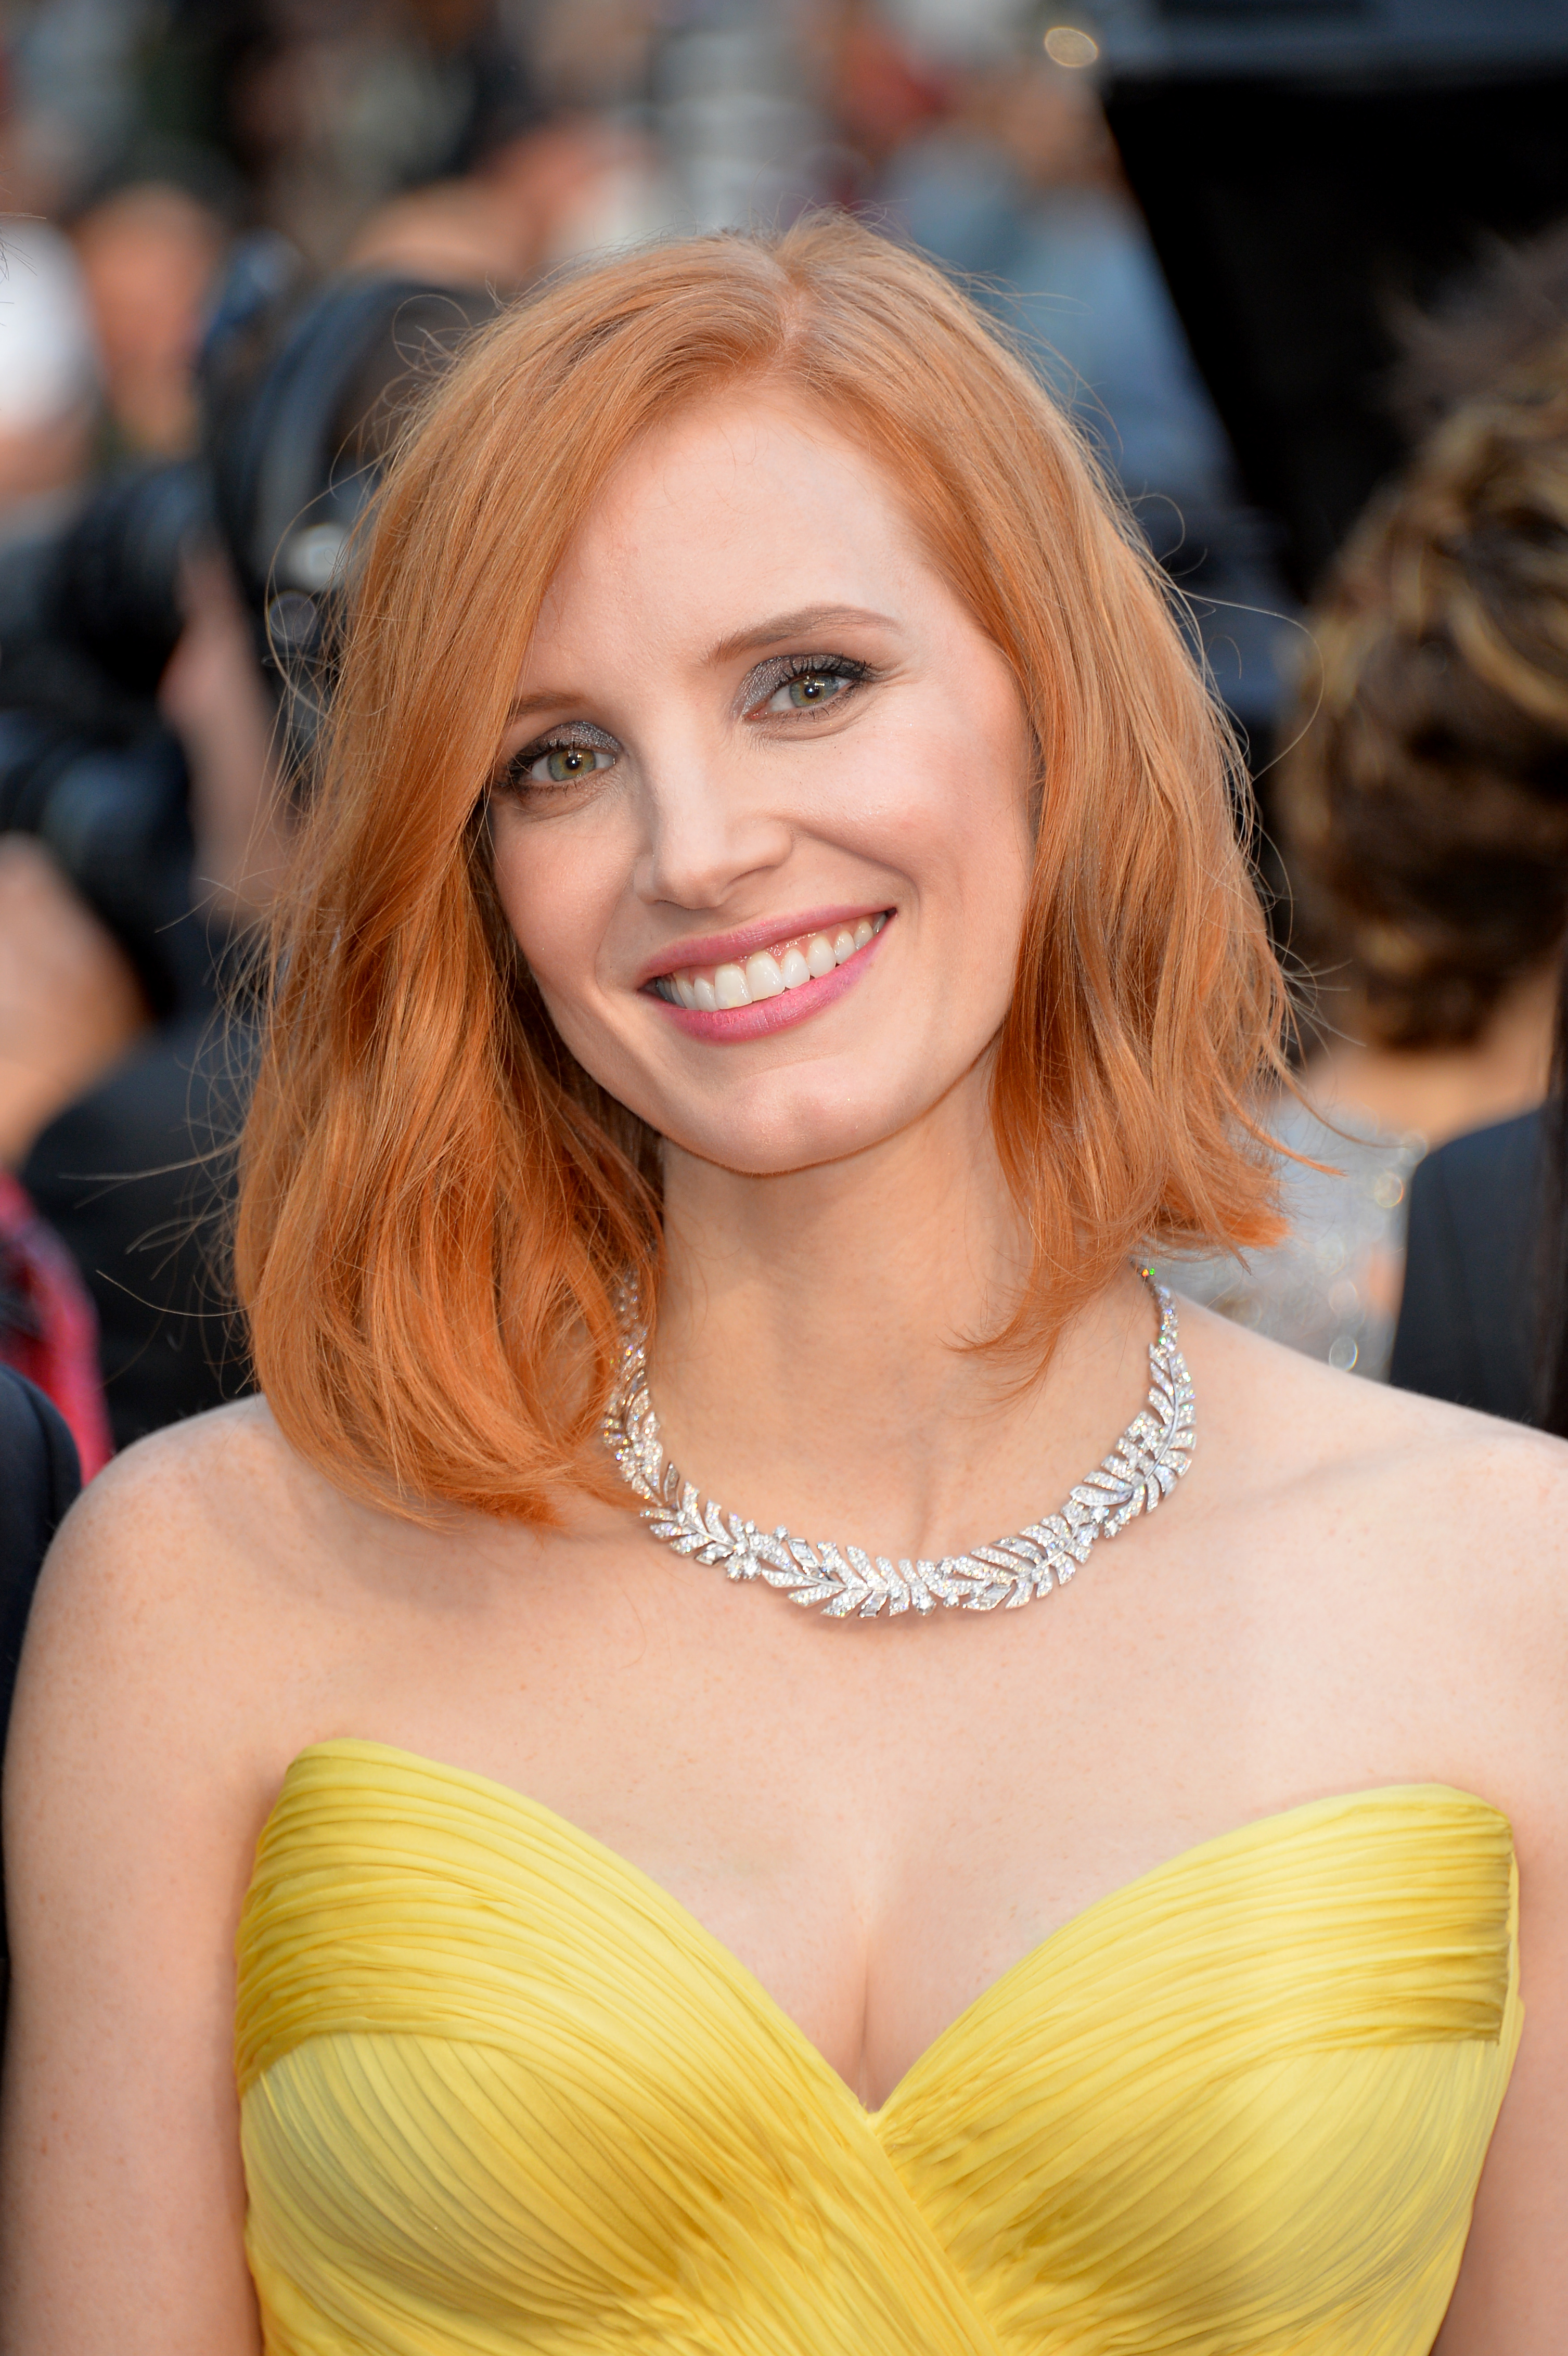 Jessica Chastain attends the opening ceremony and premiere of 'Cafe Society' during the 69th Cannes Film Festival